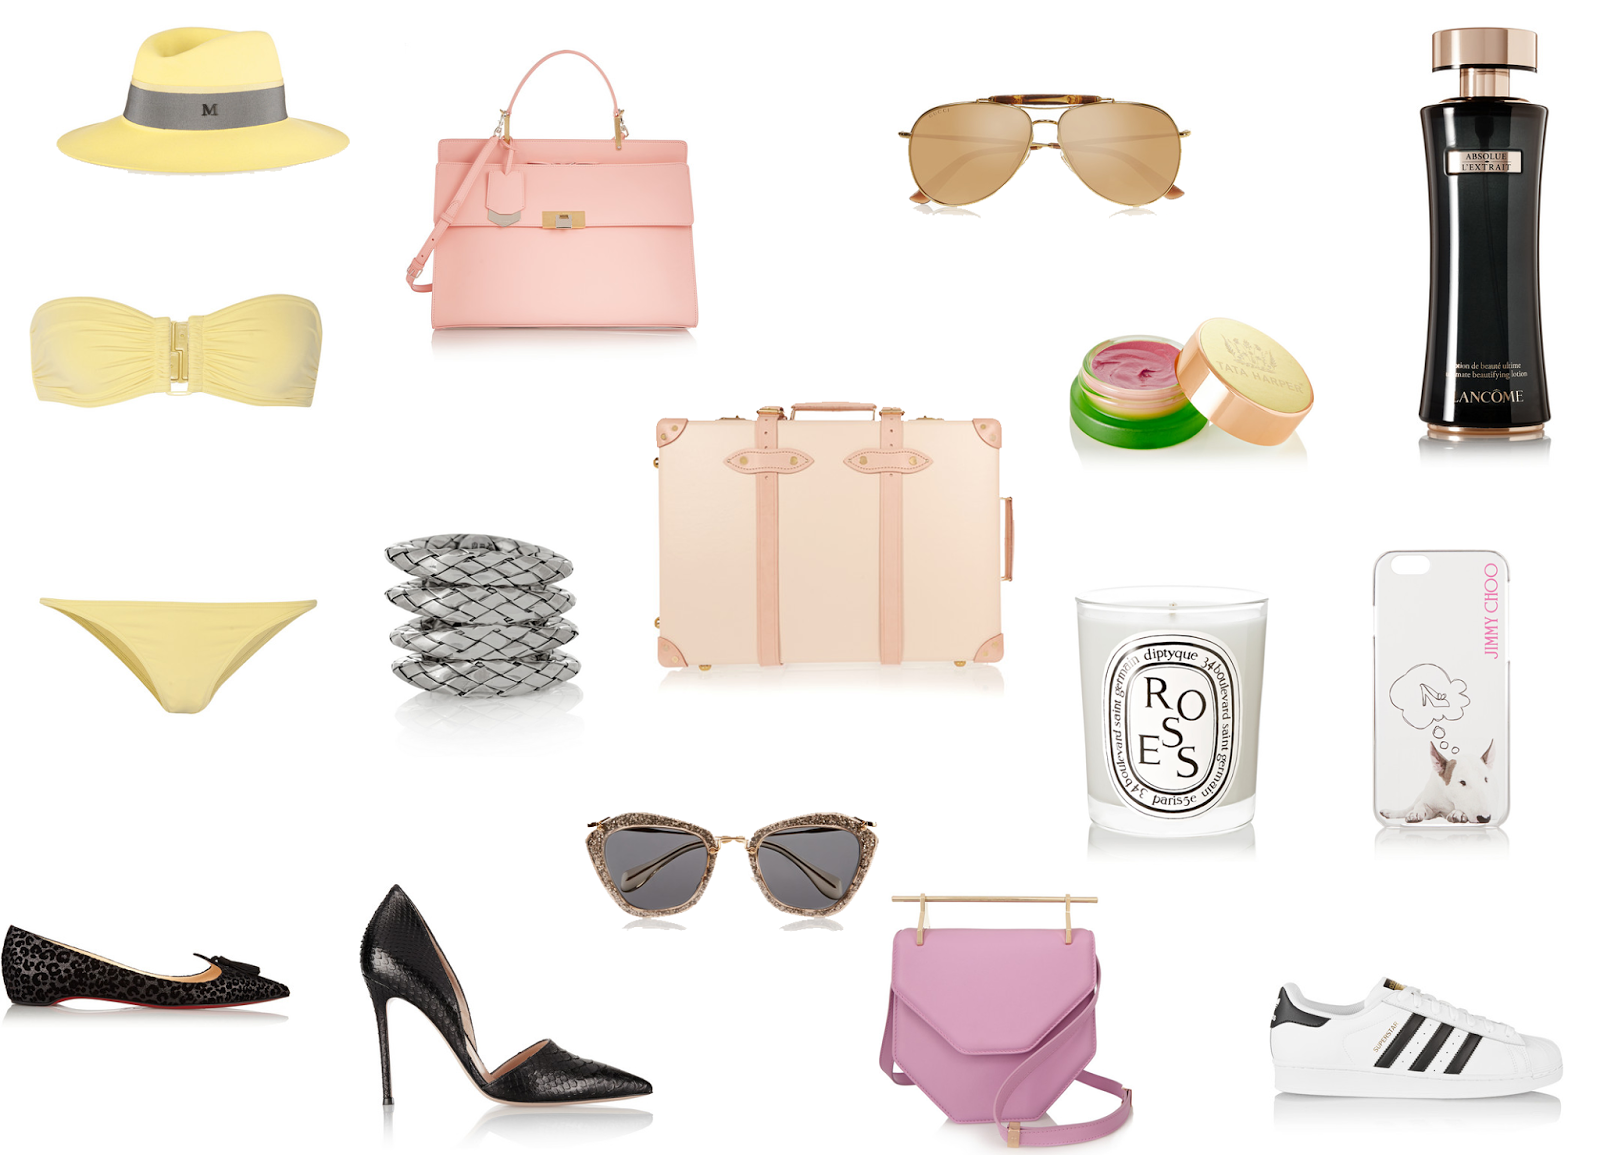 net à porter, holiday, wishlist, pardon my obsession, maison michel, louboutin